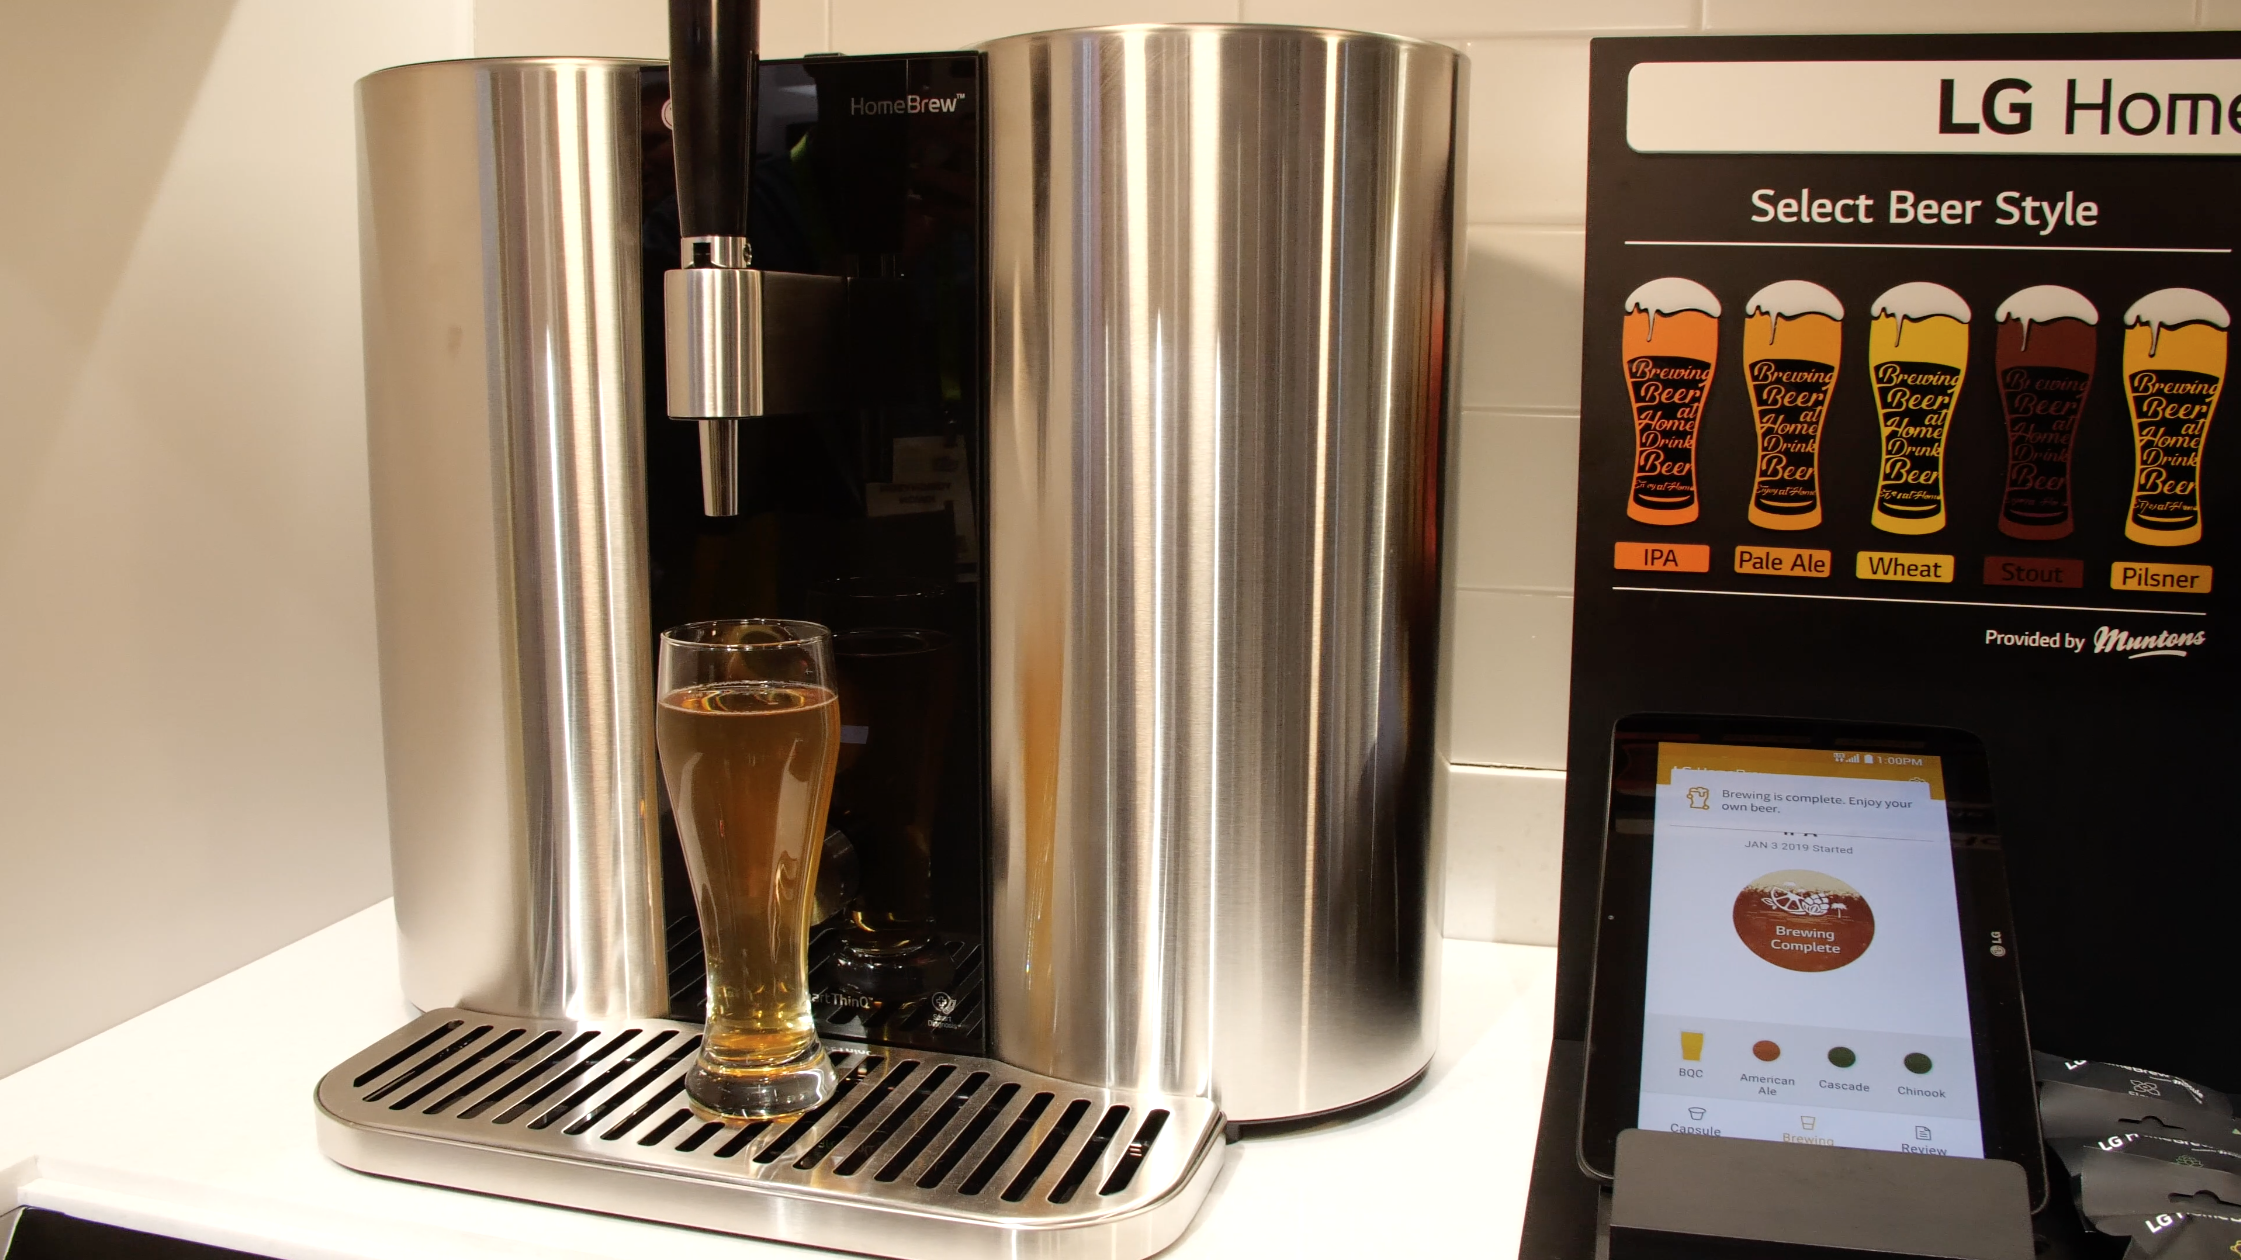 lg\u0027s new homebrew machine revolutionizes brewing beer at home